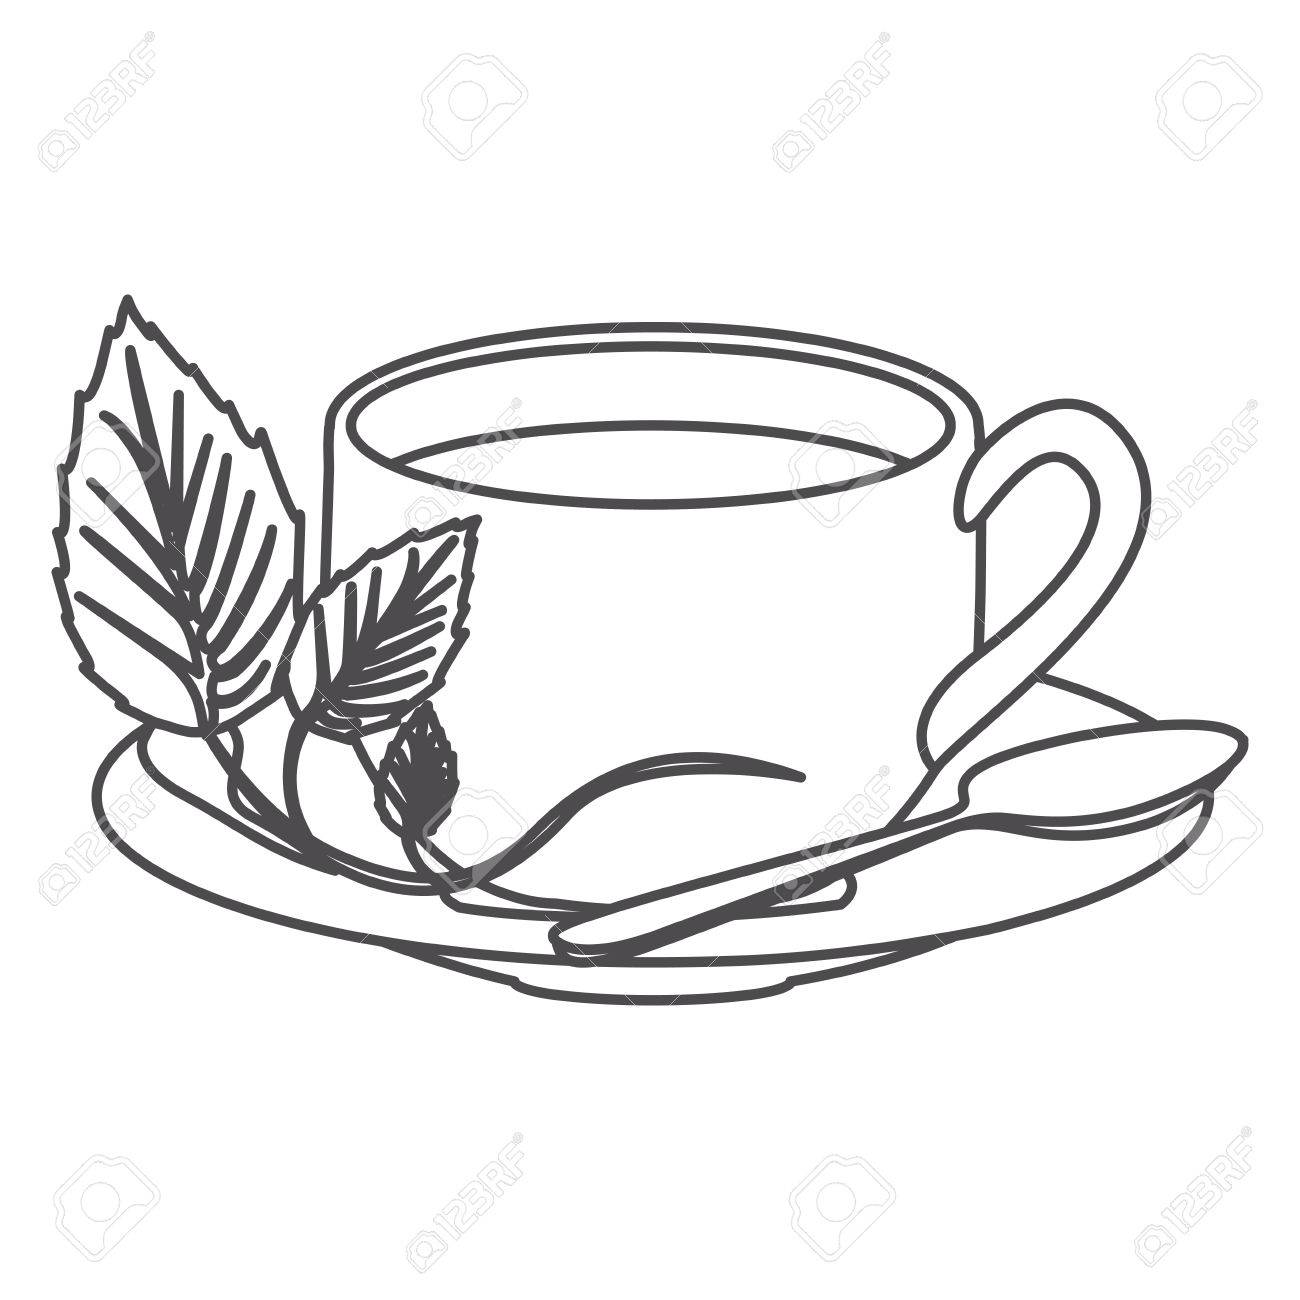 grayscale contour of hot cup of tea vector illustration royalty free cliparts vectors and stock illustration image 72800012 grayscale contour of hot cup of tea vector illustration